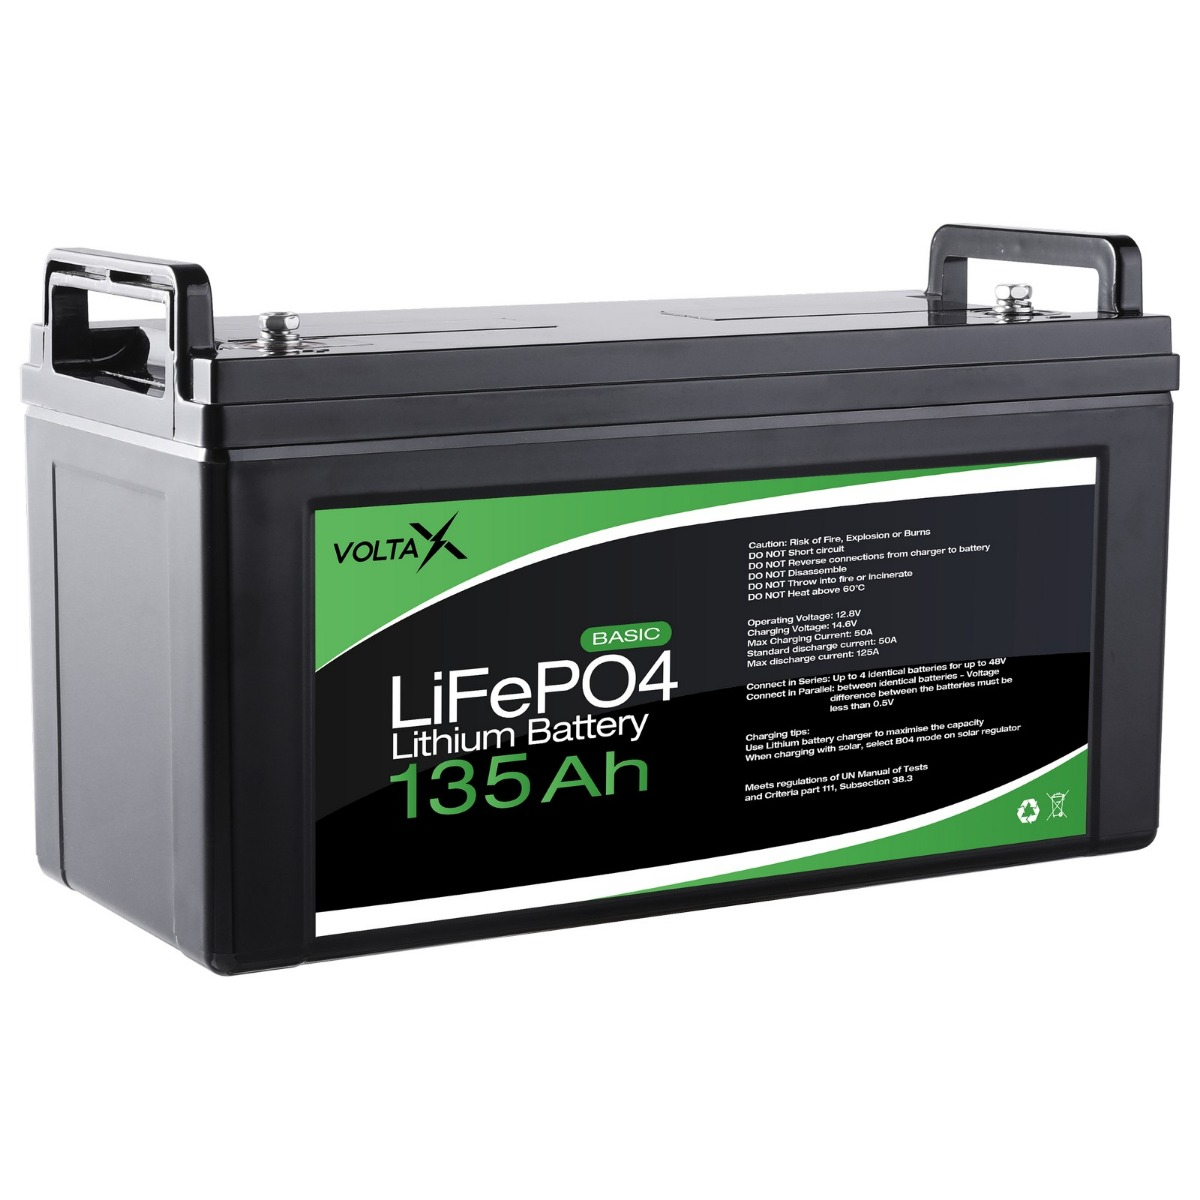 VoltaX 12V 135Ah Lithium Ion Battery LiFePO4 Deep Cycle Recycle Camping RV Solar